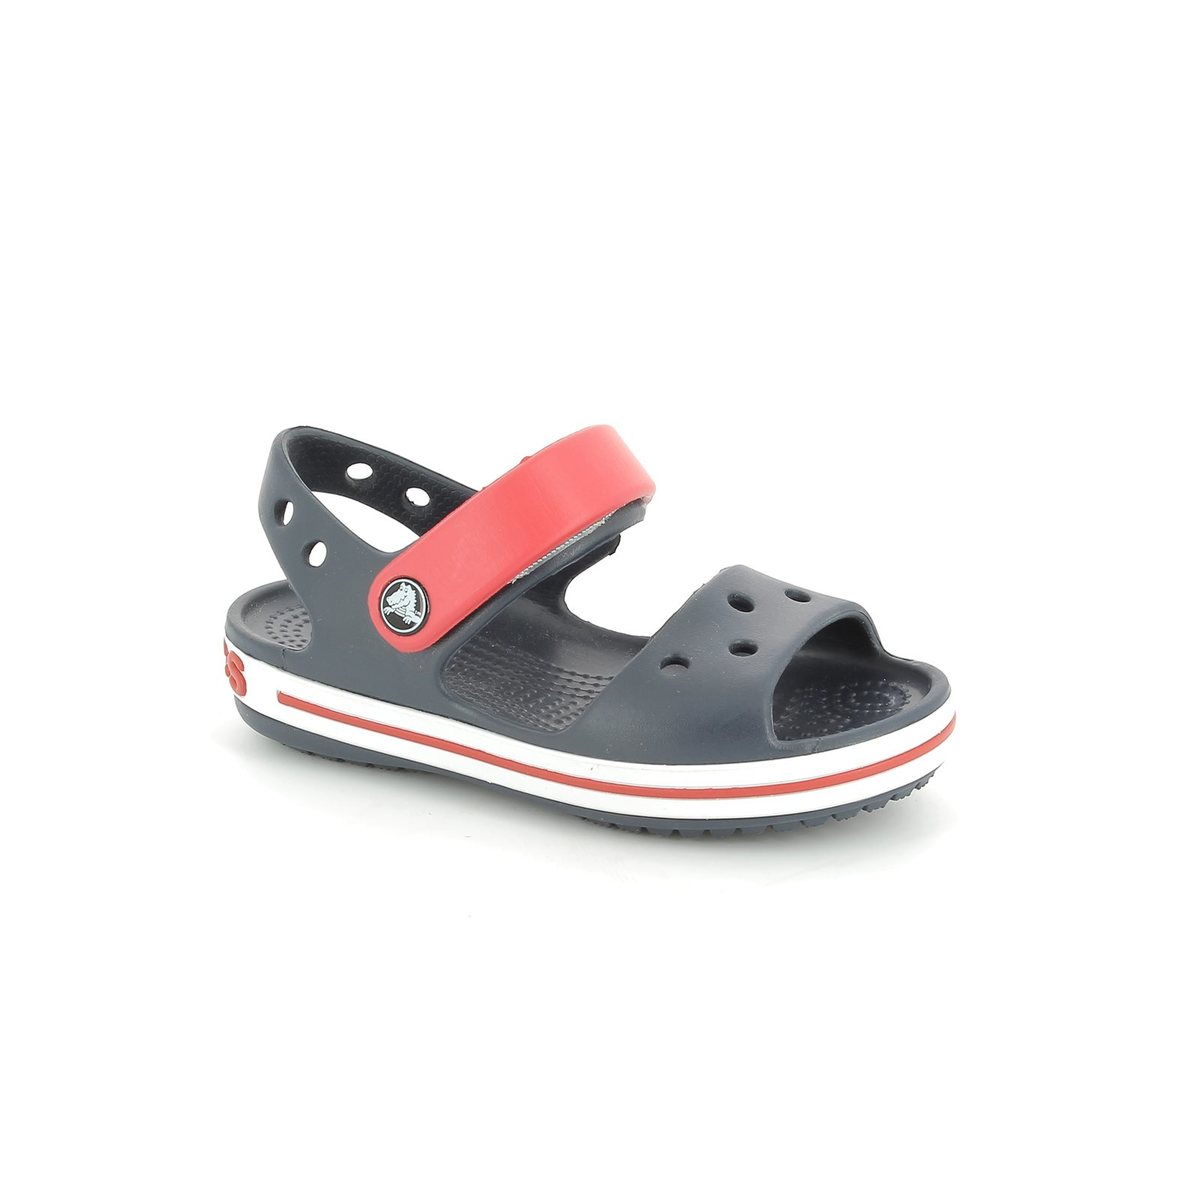 d082ce6d72 Crocs Sandals - Navy multi - 12856 485 CROCBAND KIDS